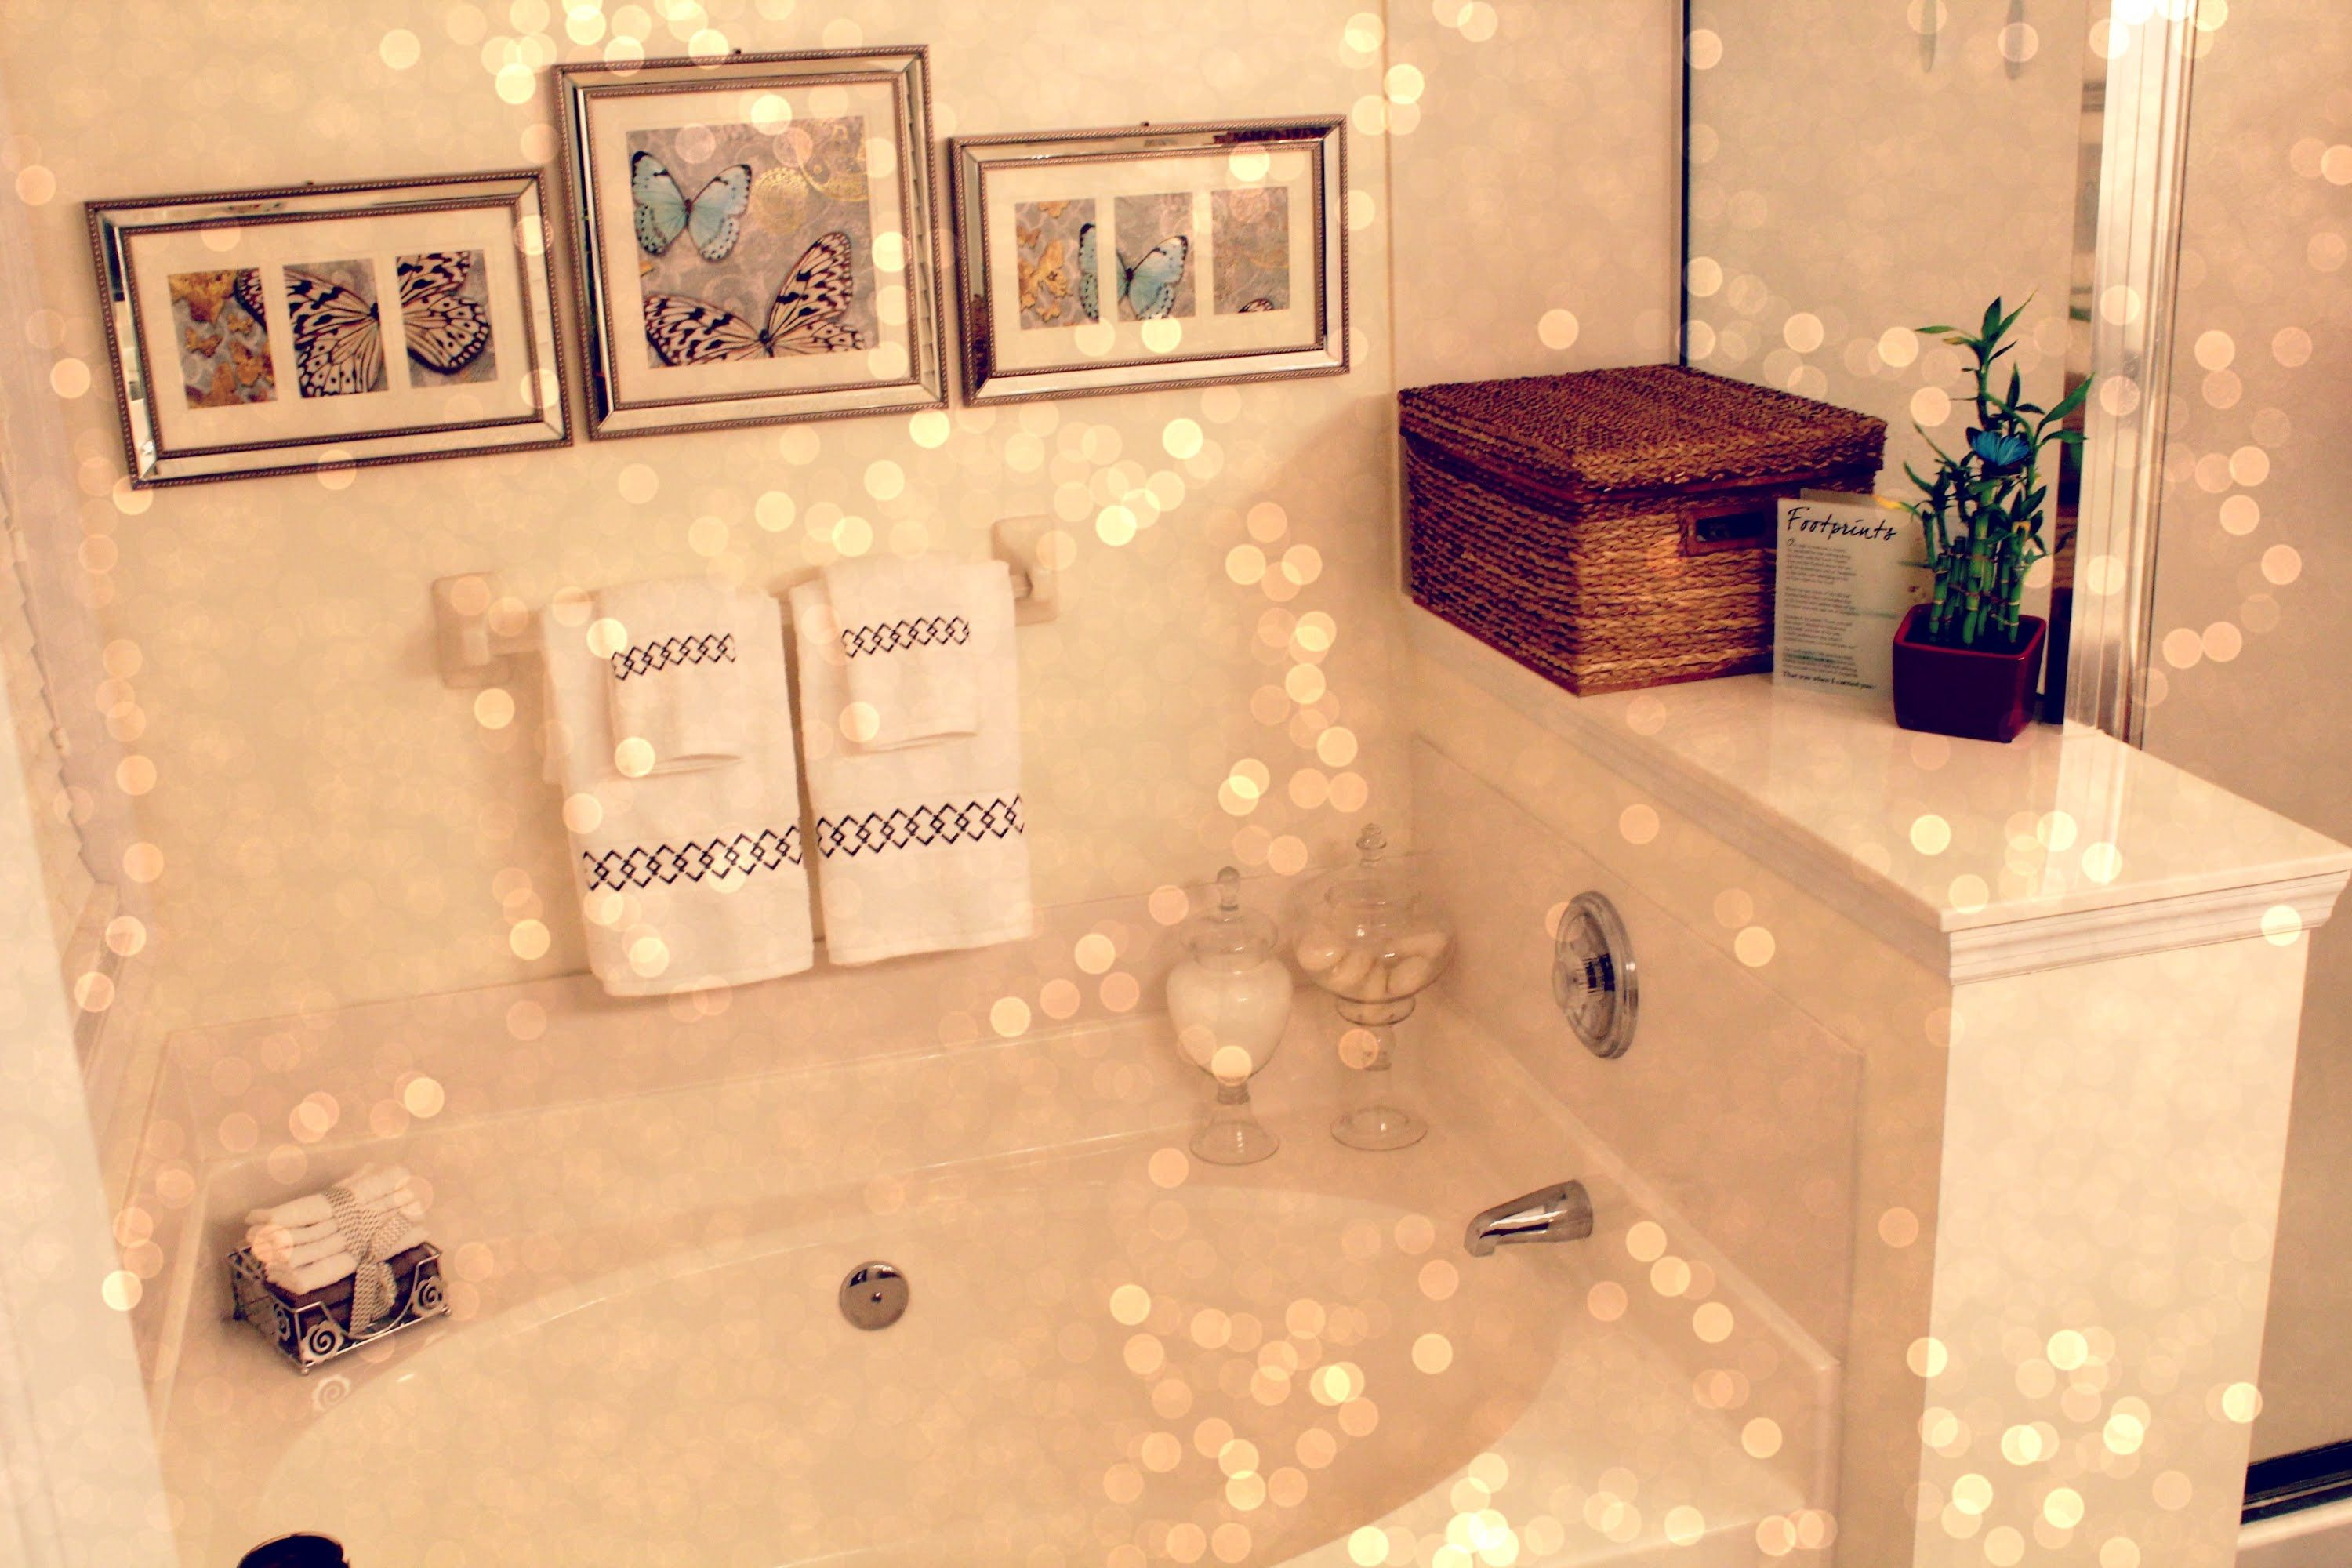 decorating ideas on budget tour bathroom very pin a friendly small decor